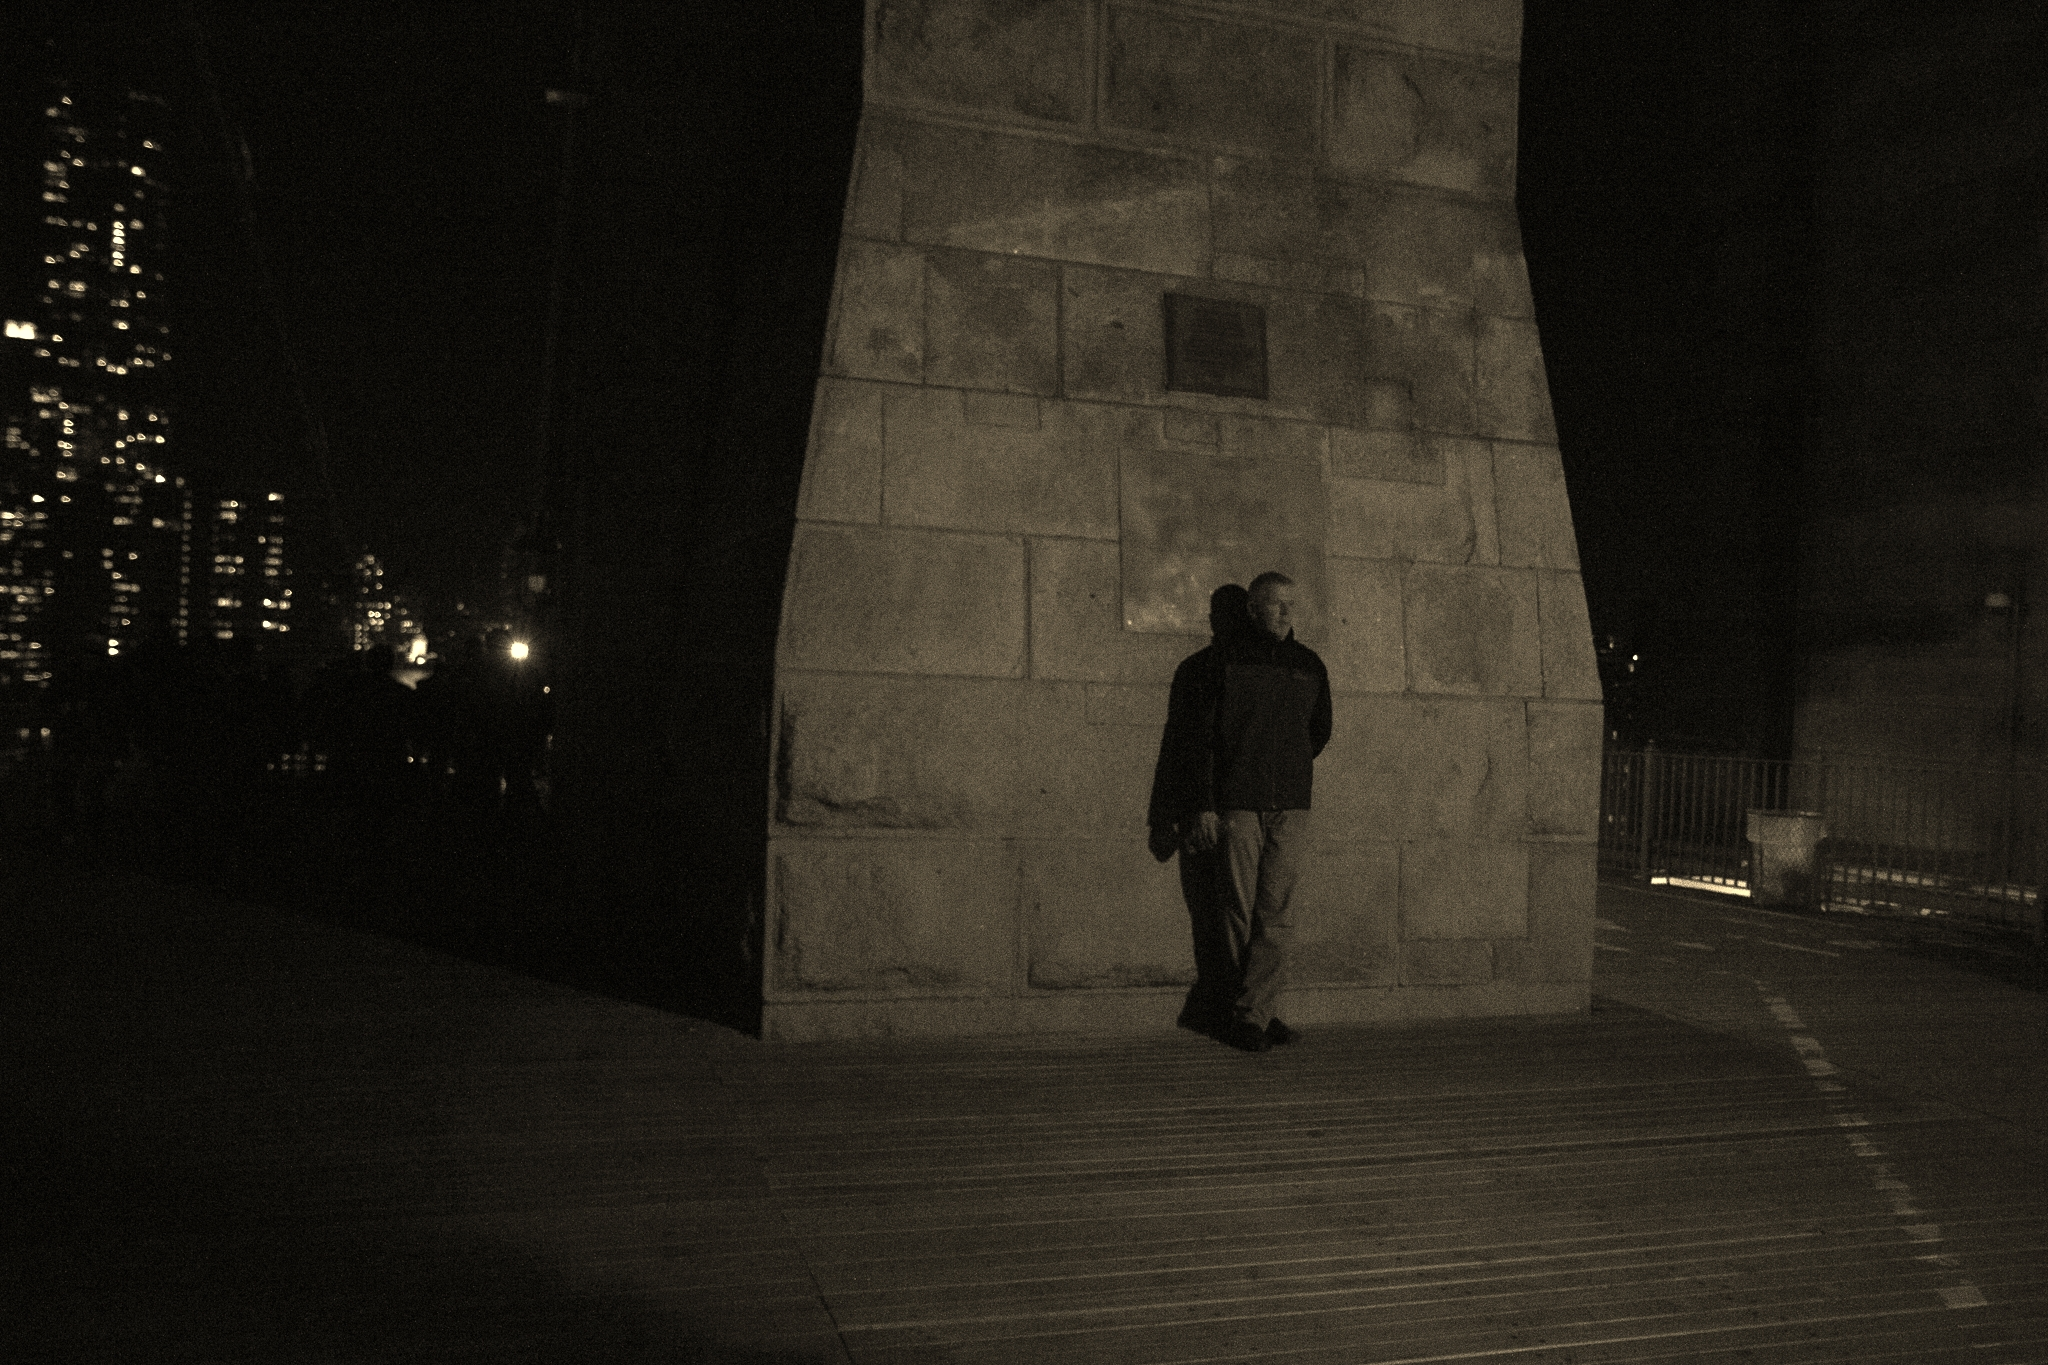 Just a man on the Brooklyn Bridge. But he seemed to be posing, so I took some pics. ;)